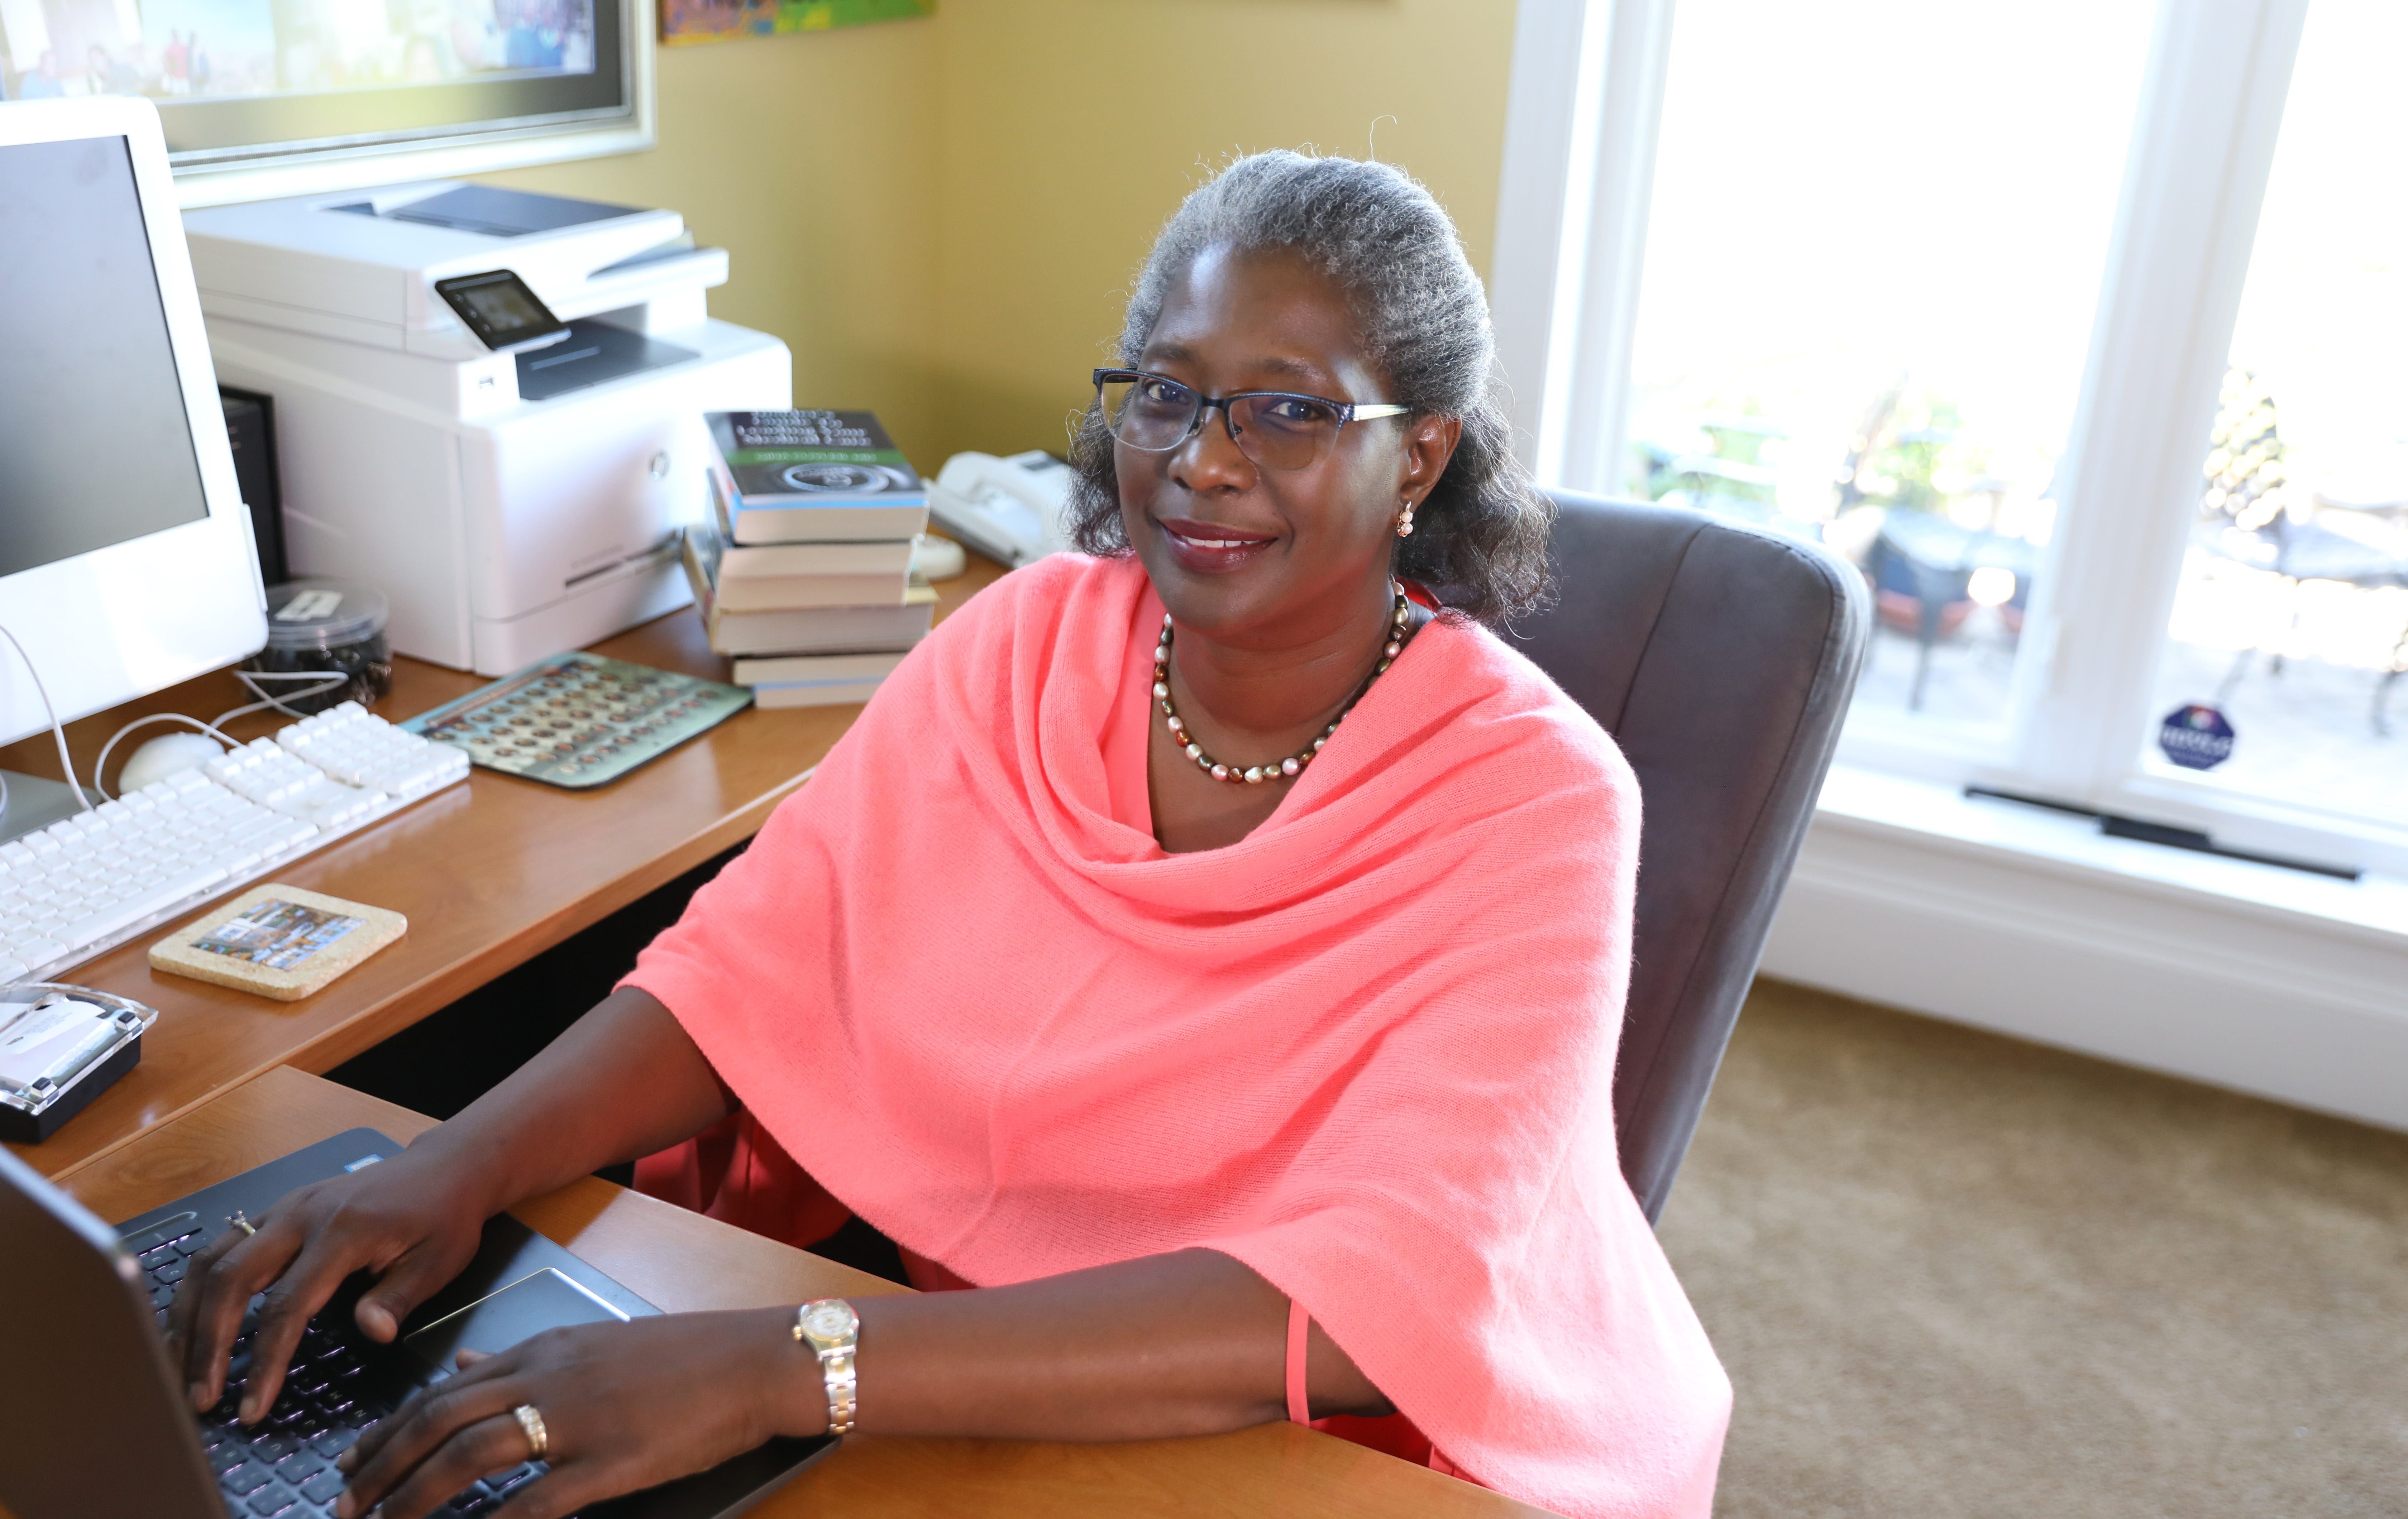 Dr. Gina Cuyler says she was motivated to create a network of people who understood  the challenges of being a Black physician and supported aspiring medical students— something she longed for when she was a student.